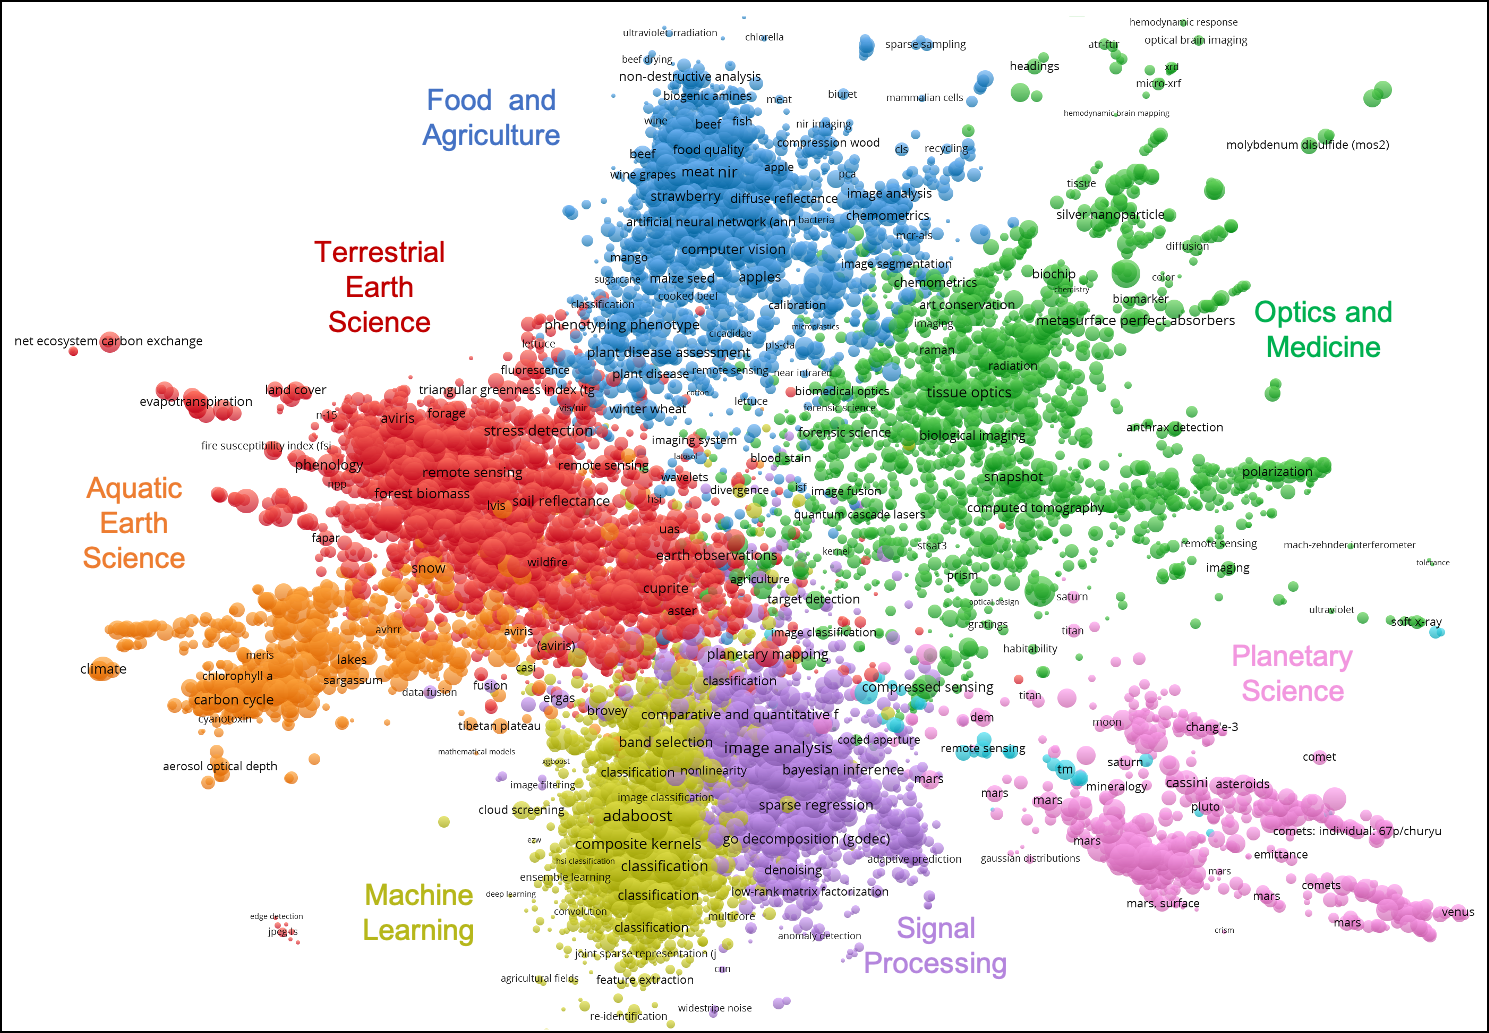 Figure showing self-citing clusters of research communities on the basis of scientific journal publications and number of citations